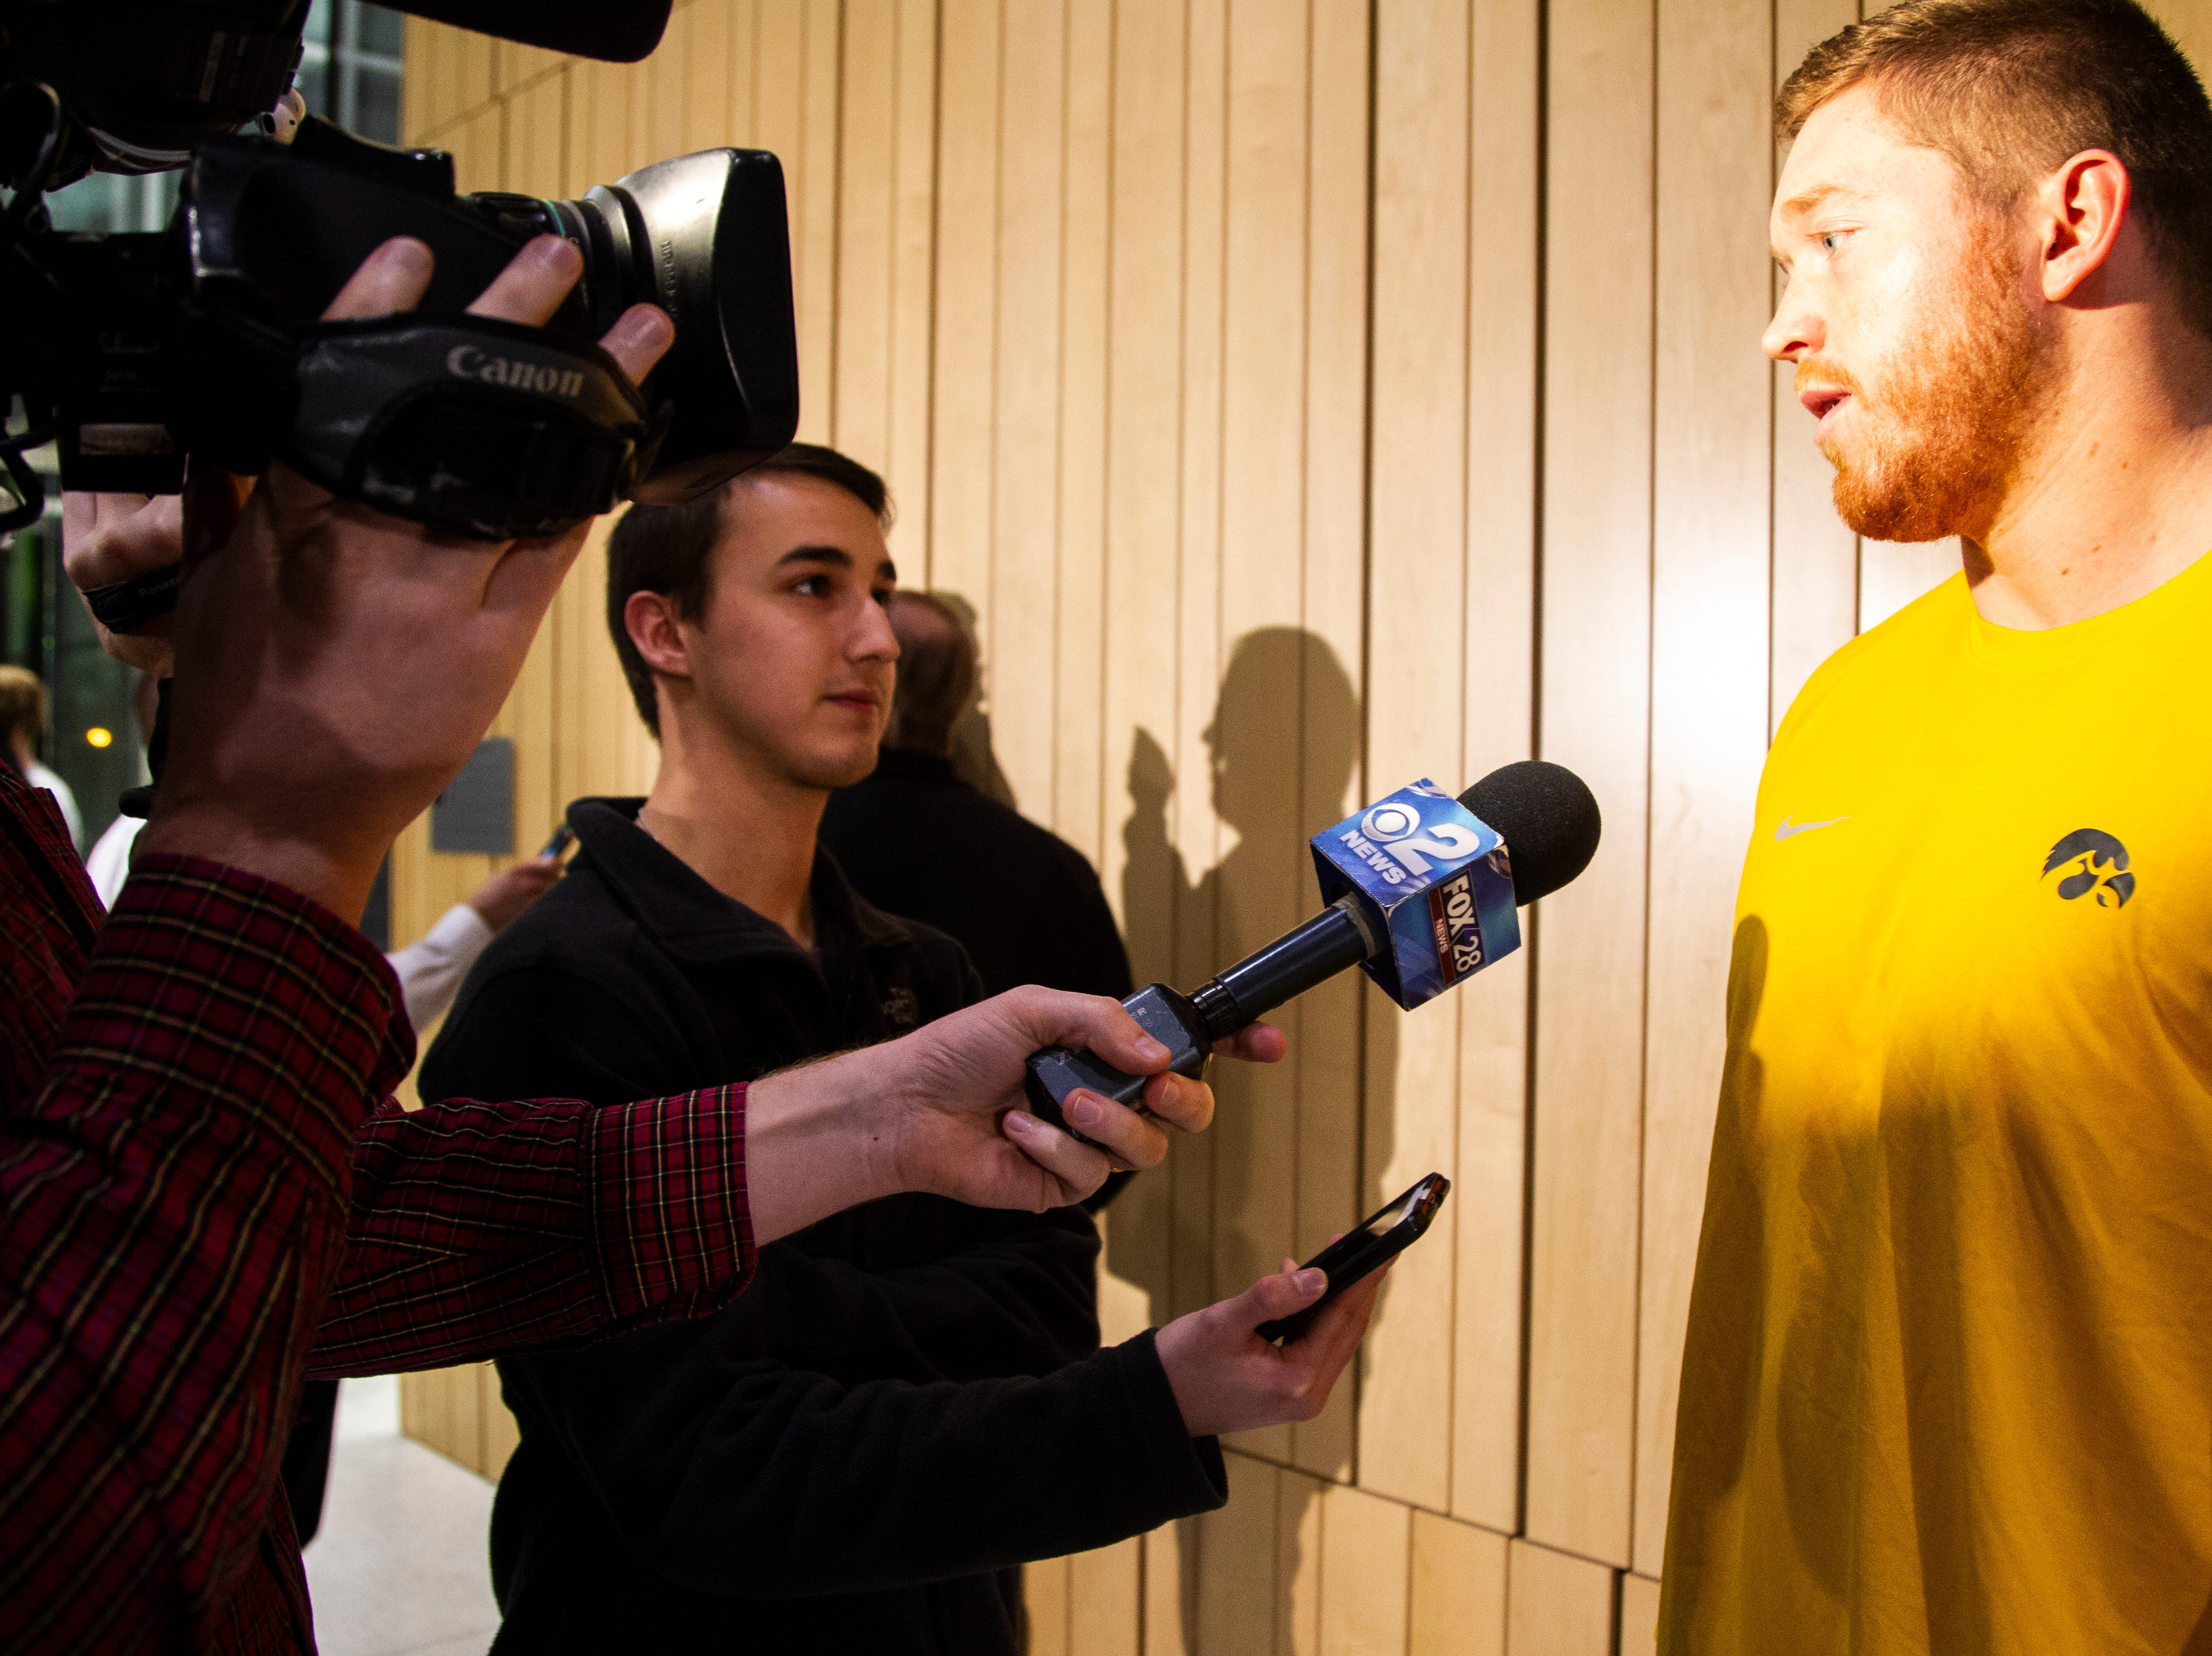 Iowa defensive end Parker Hesse talks with reporters during an Outback Bowl announcement press conference on Sunday, Dec. 2, 2018, at the Hansen Football Performance Center in Iowa City.